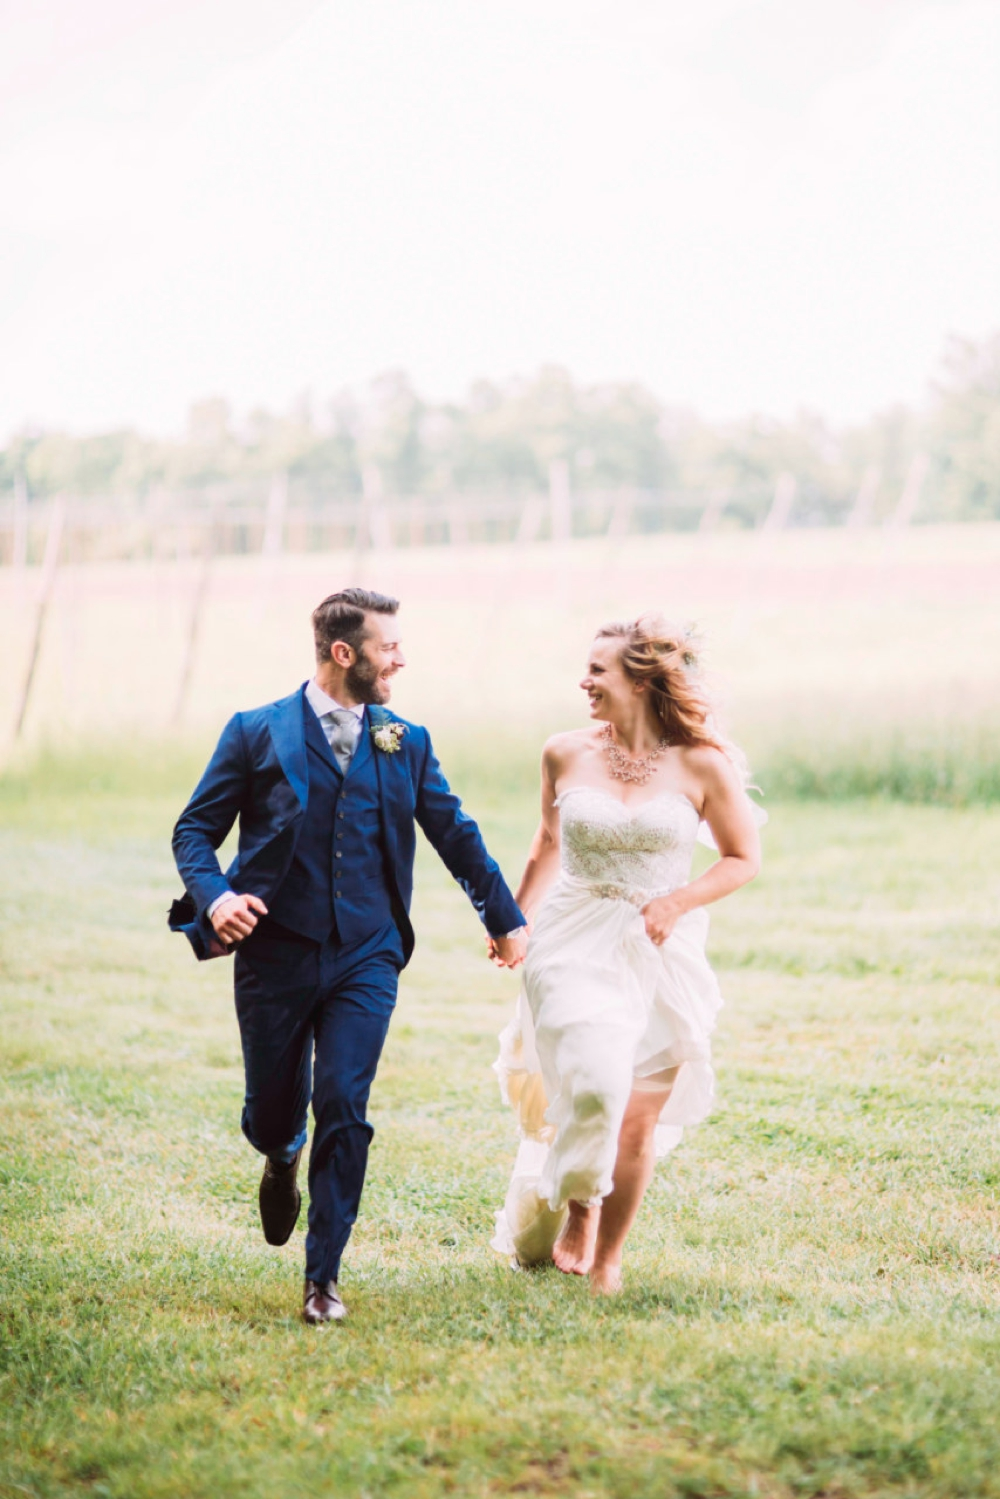 Bride and groom running in a field